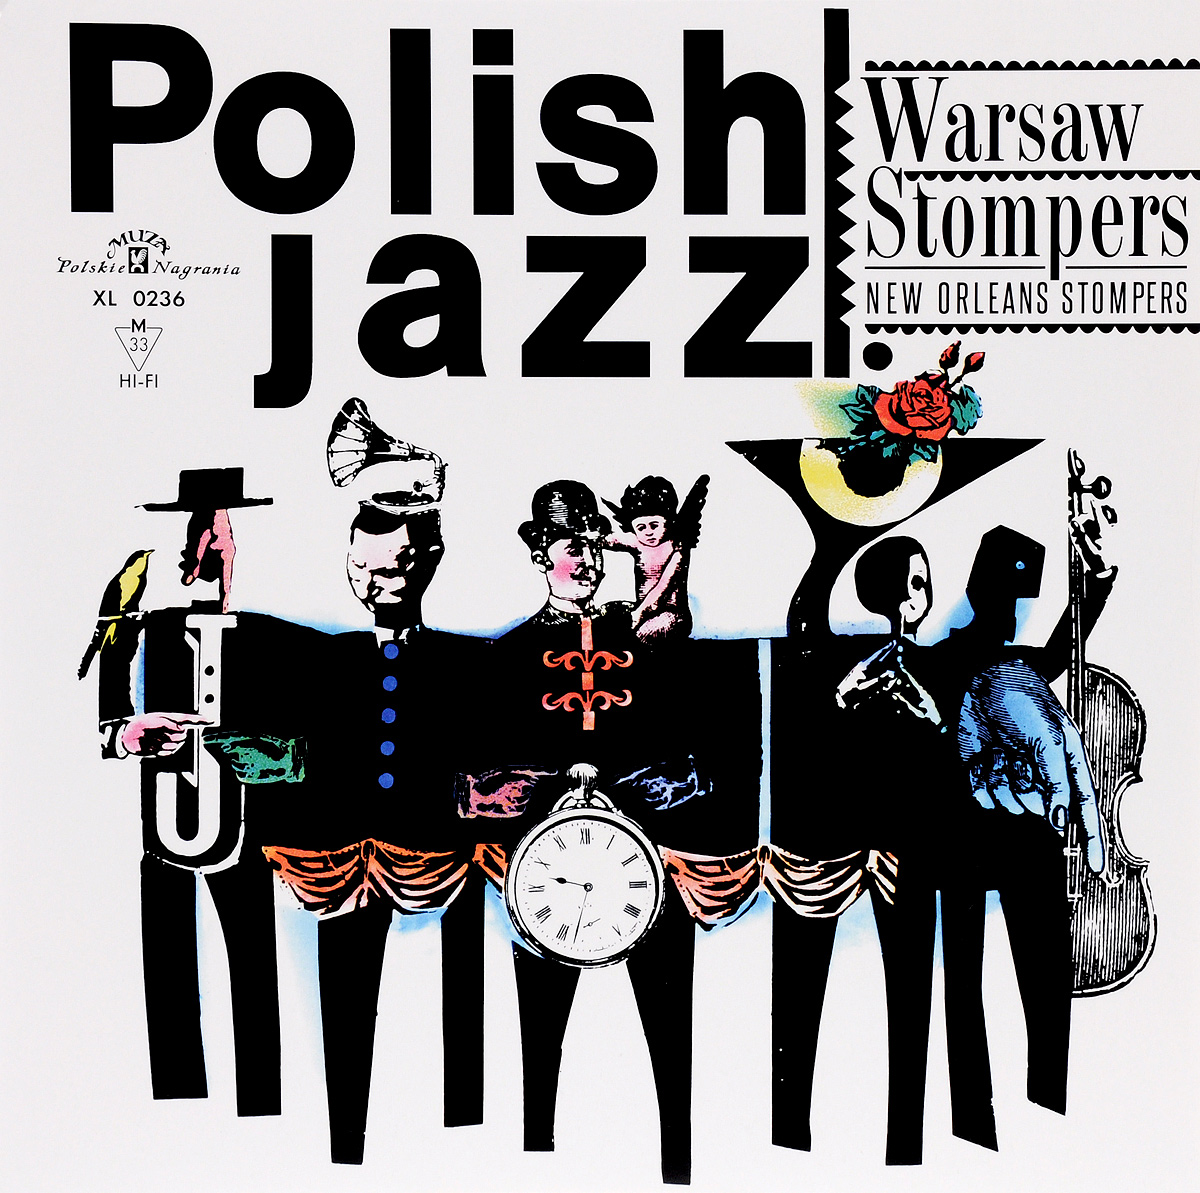 New Orleans Stompers Polish Jazz. New Orleans Stompers. Warsaw Stompers (LP) b a p warsaw